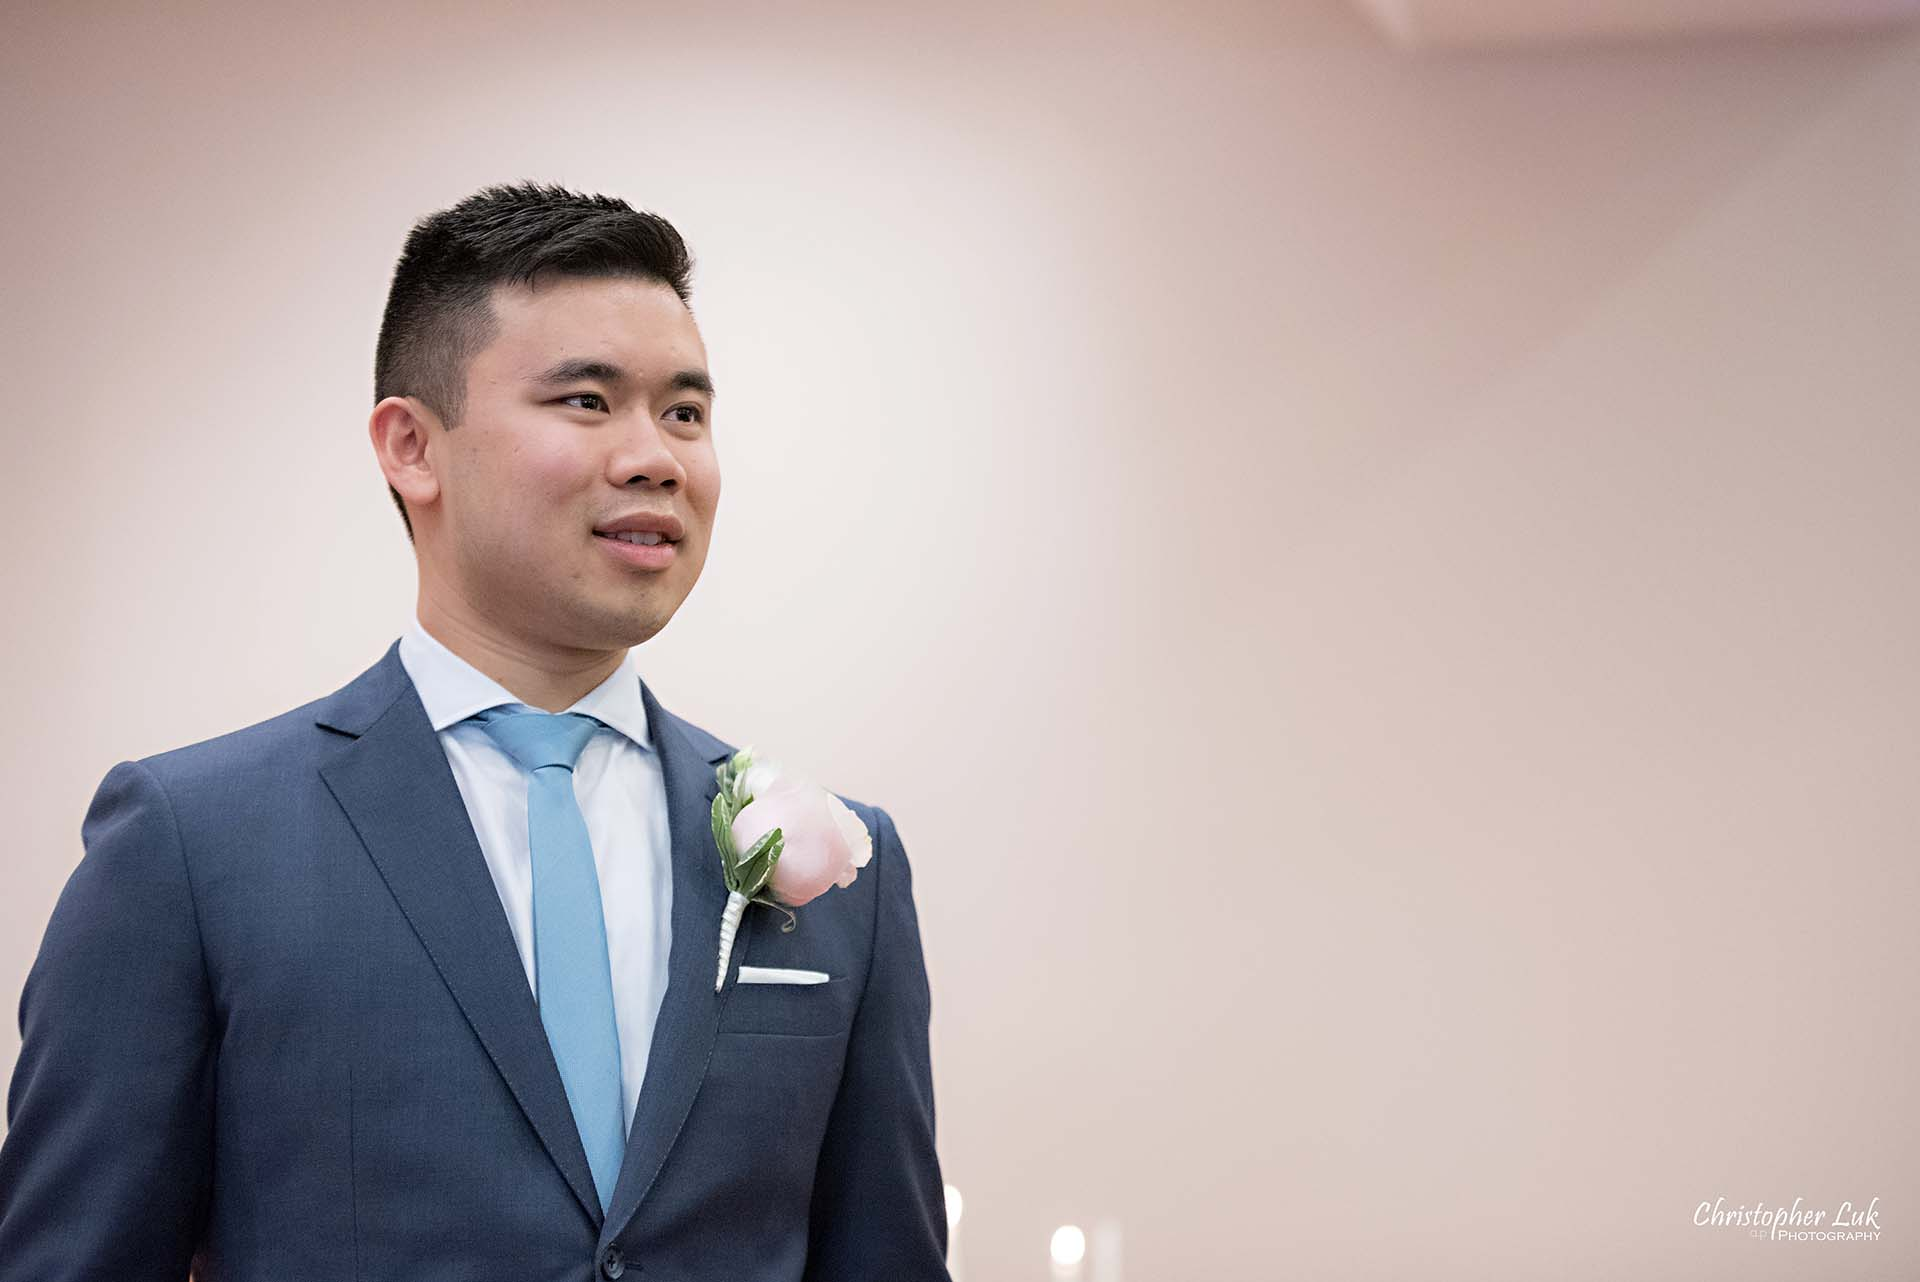 Christopher Luk Toronto Wedding Photographer Chinese Gospel Church Scarborough Ceremony Processional Groom Reaction